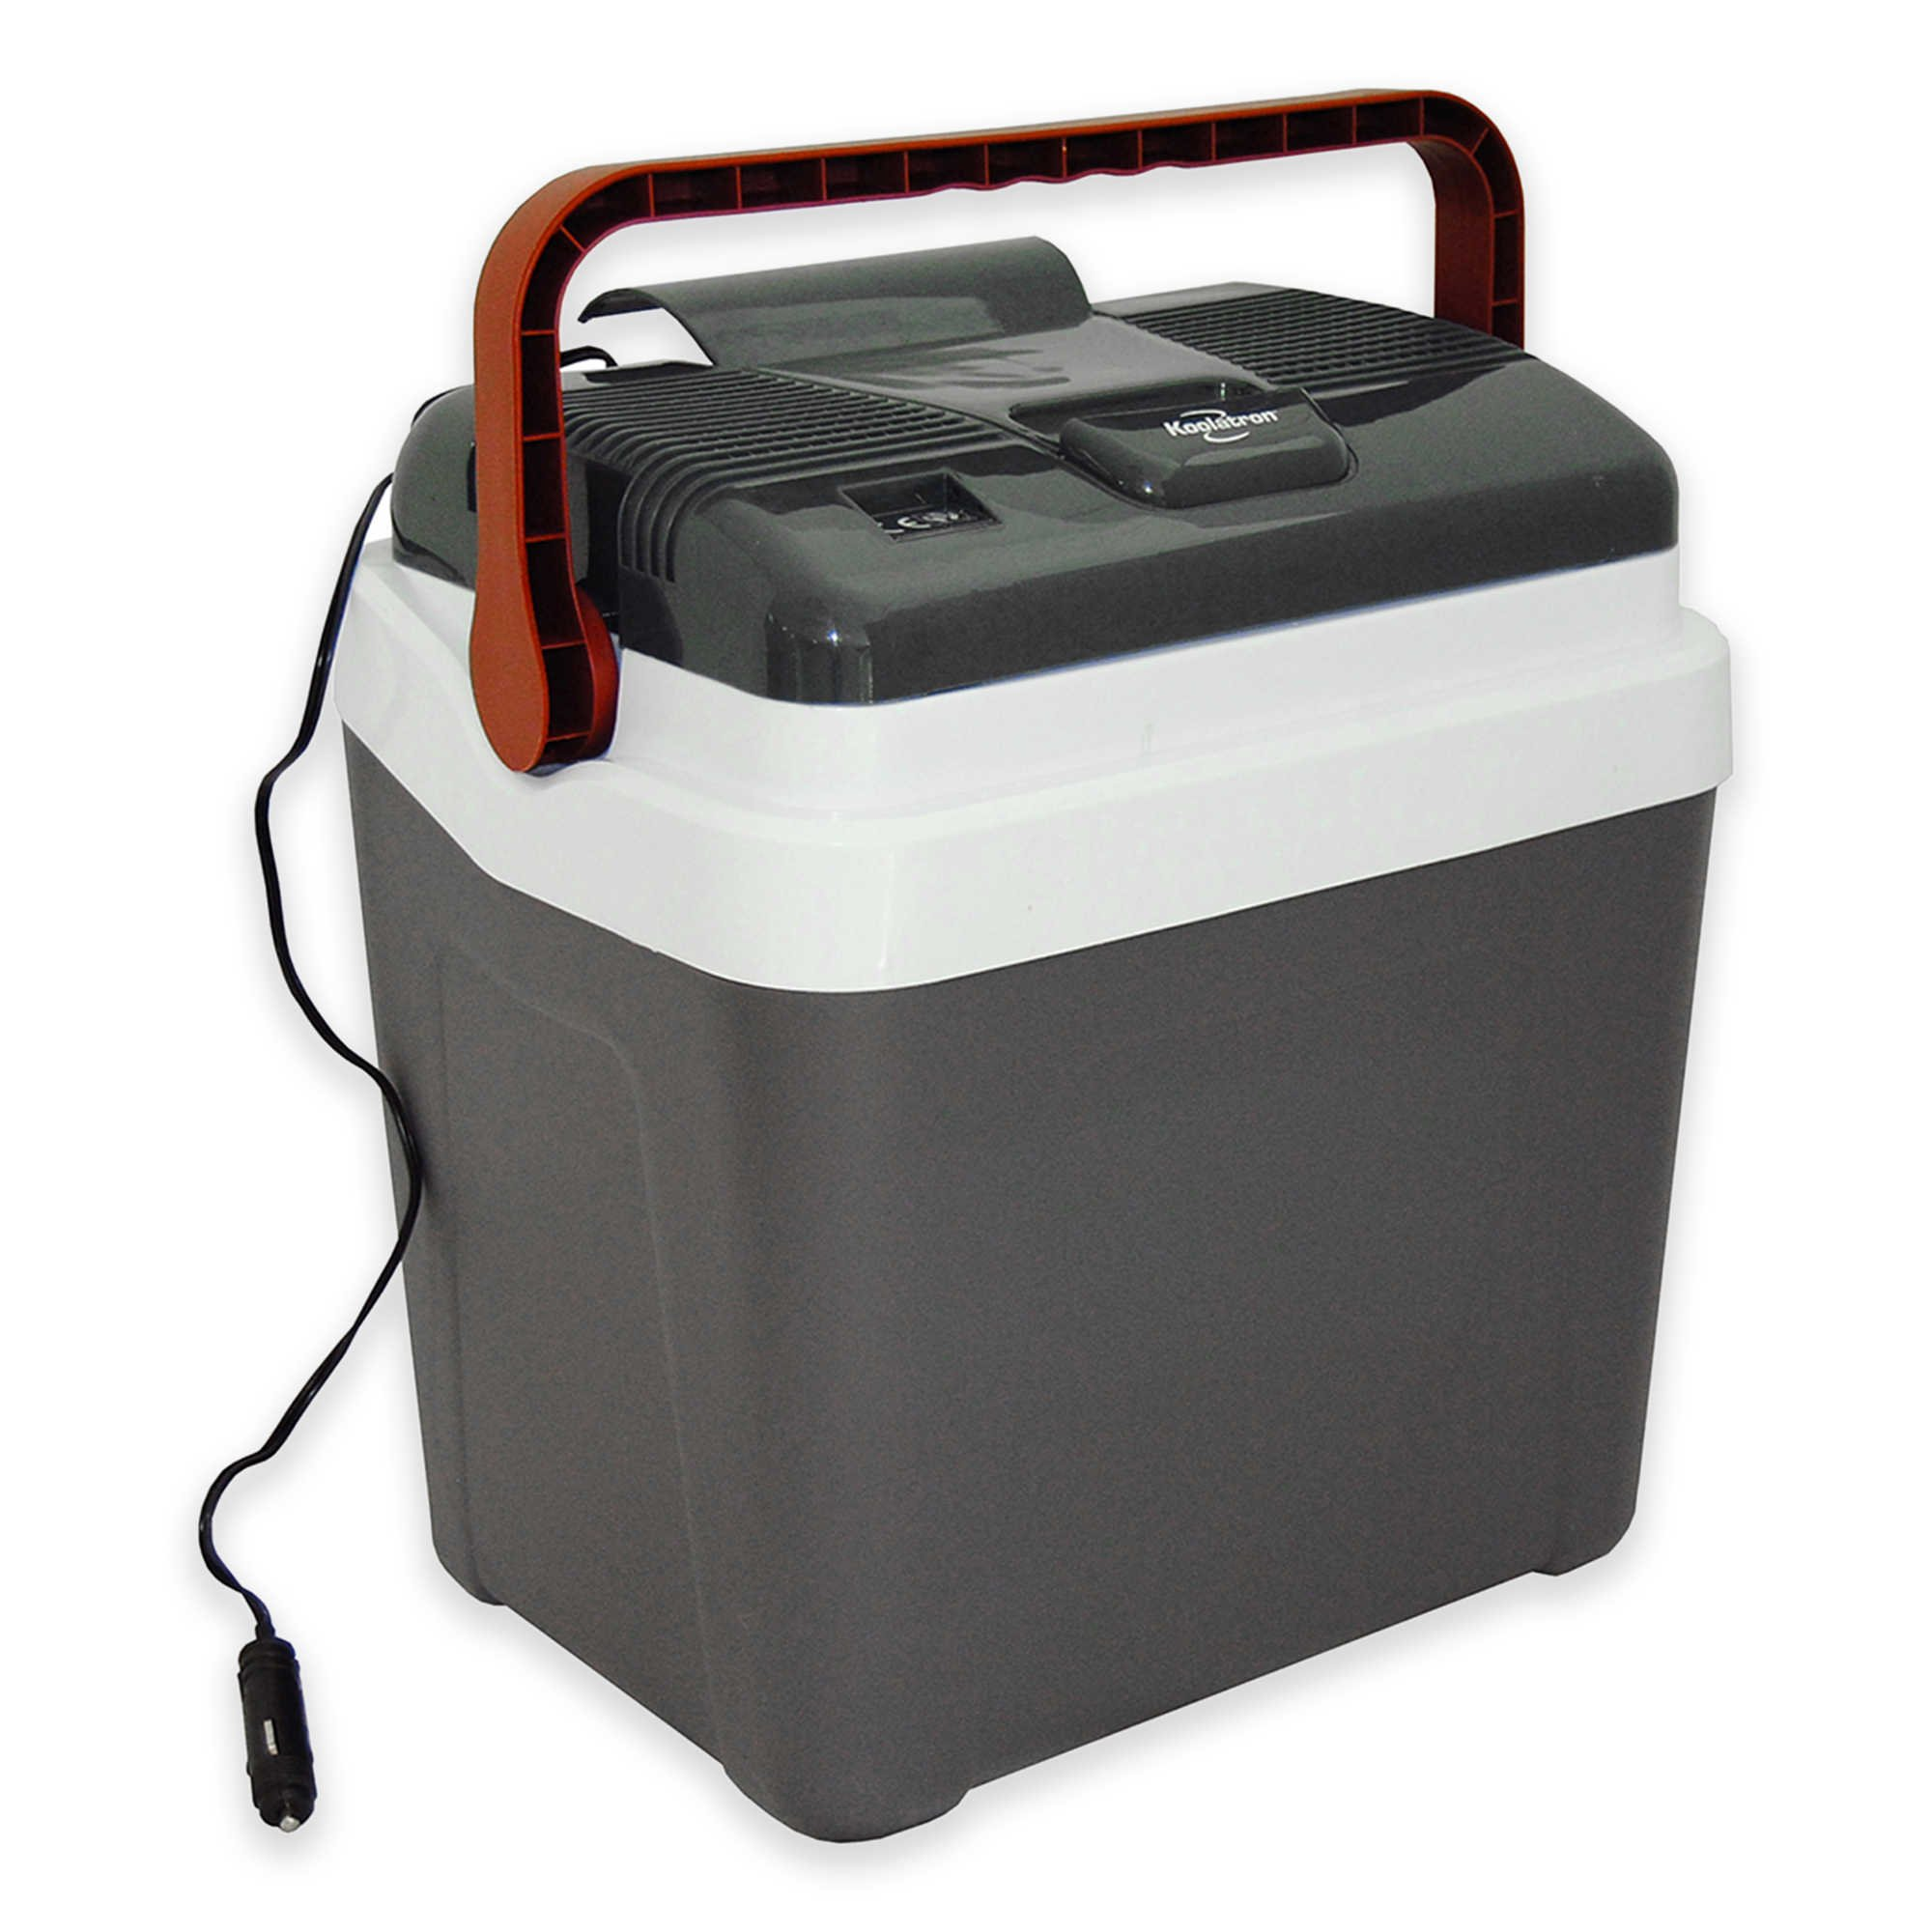 Koolatron 26 qt. Grab-and-Go Fun Plastic Cooler with Locking Flip-Up Handle in Grey/White